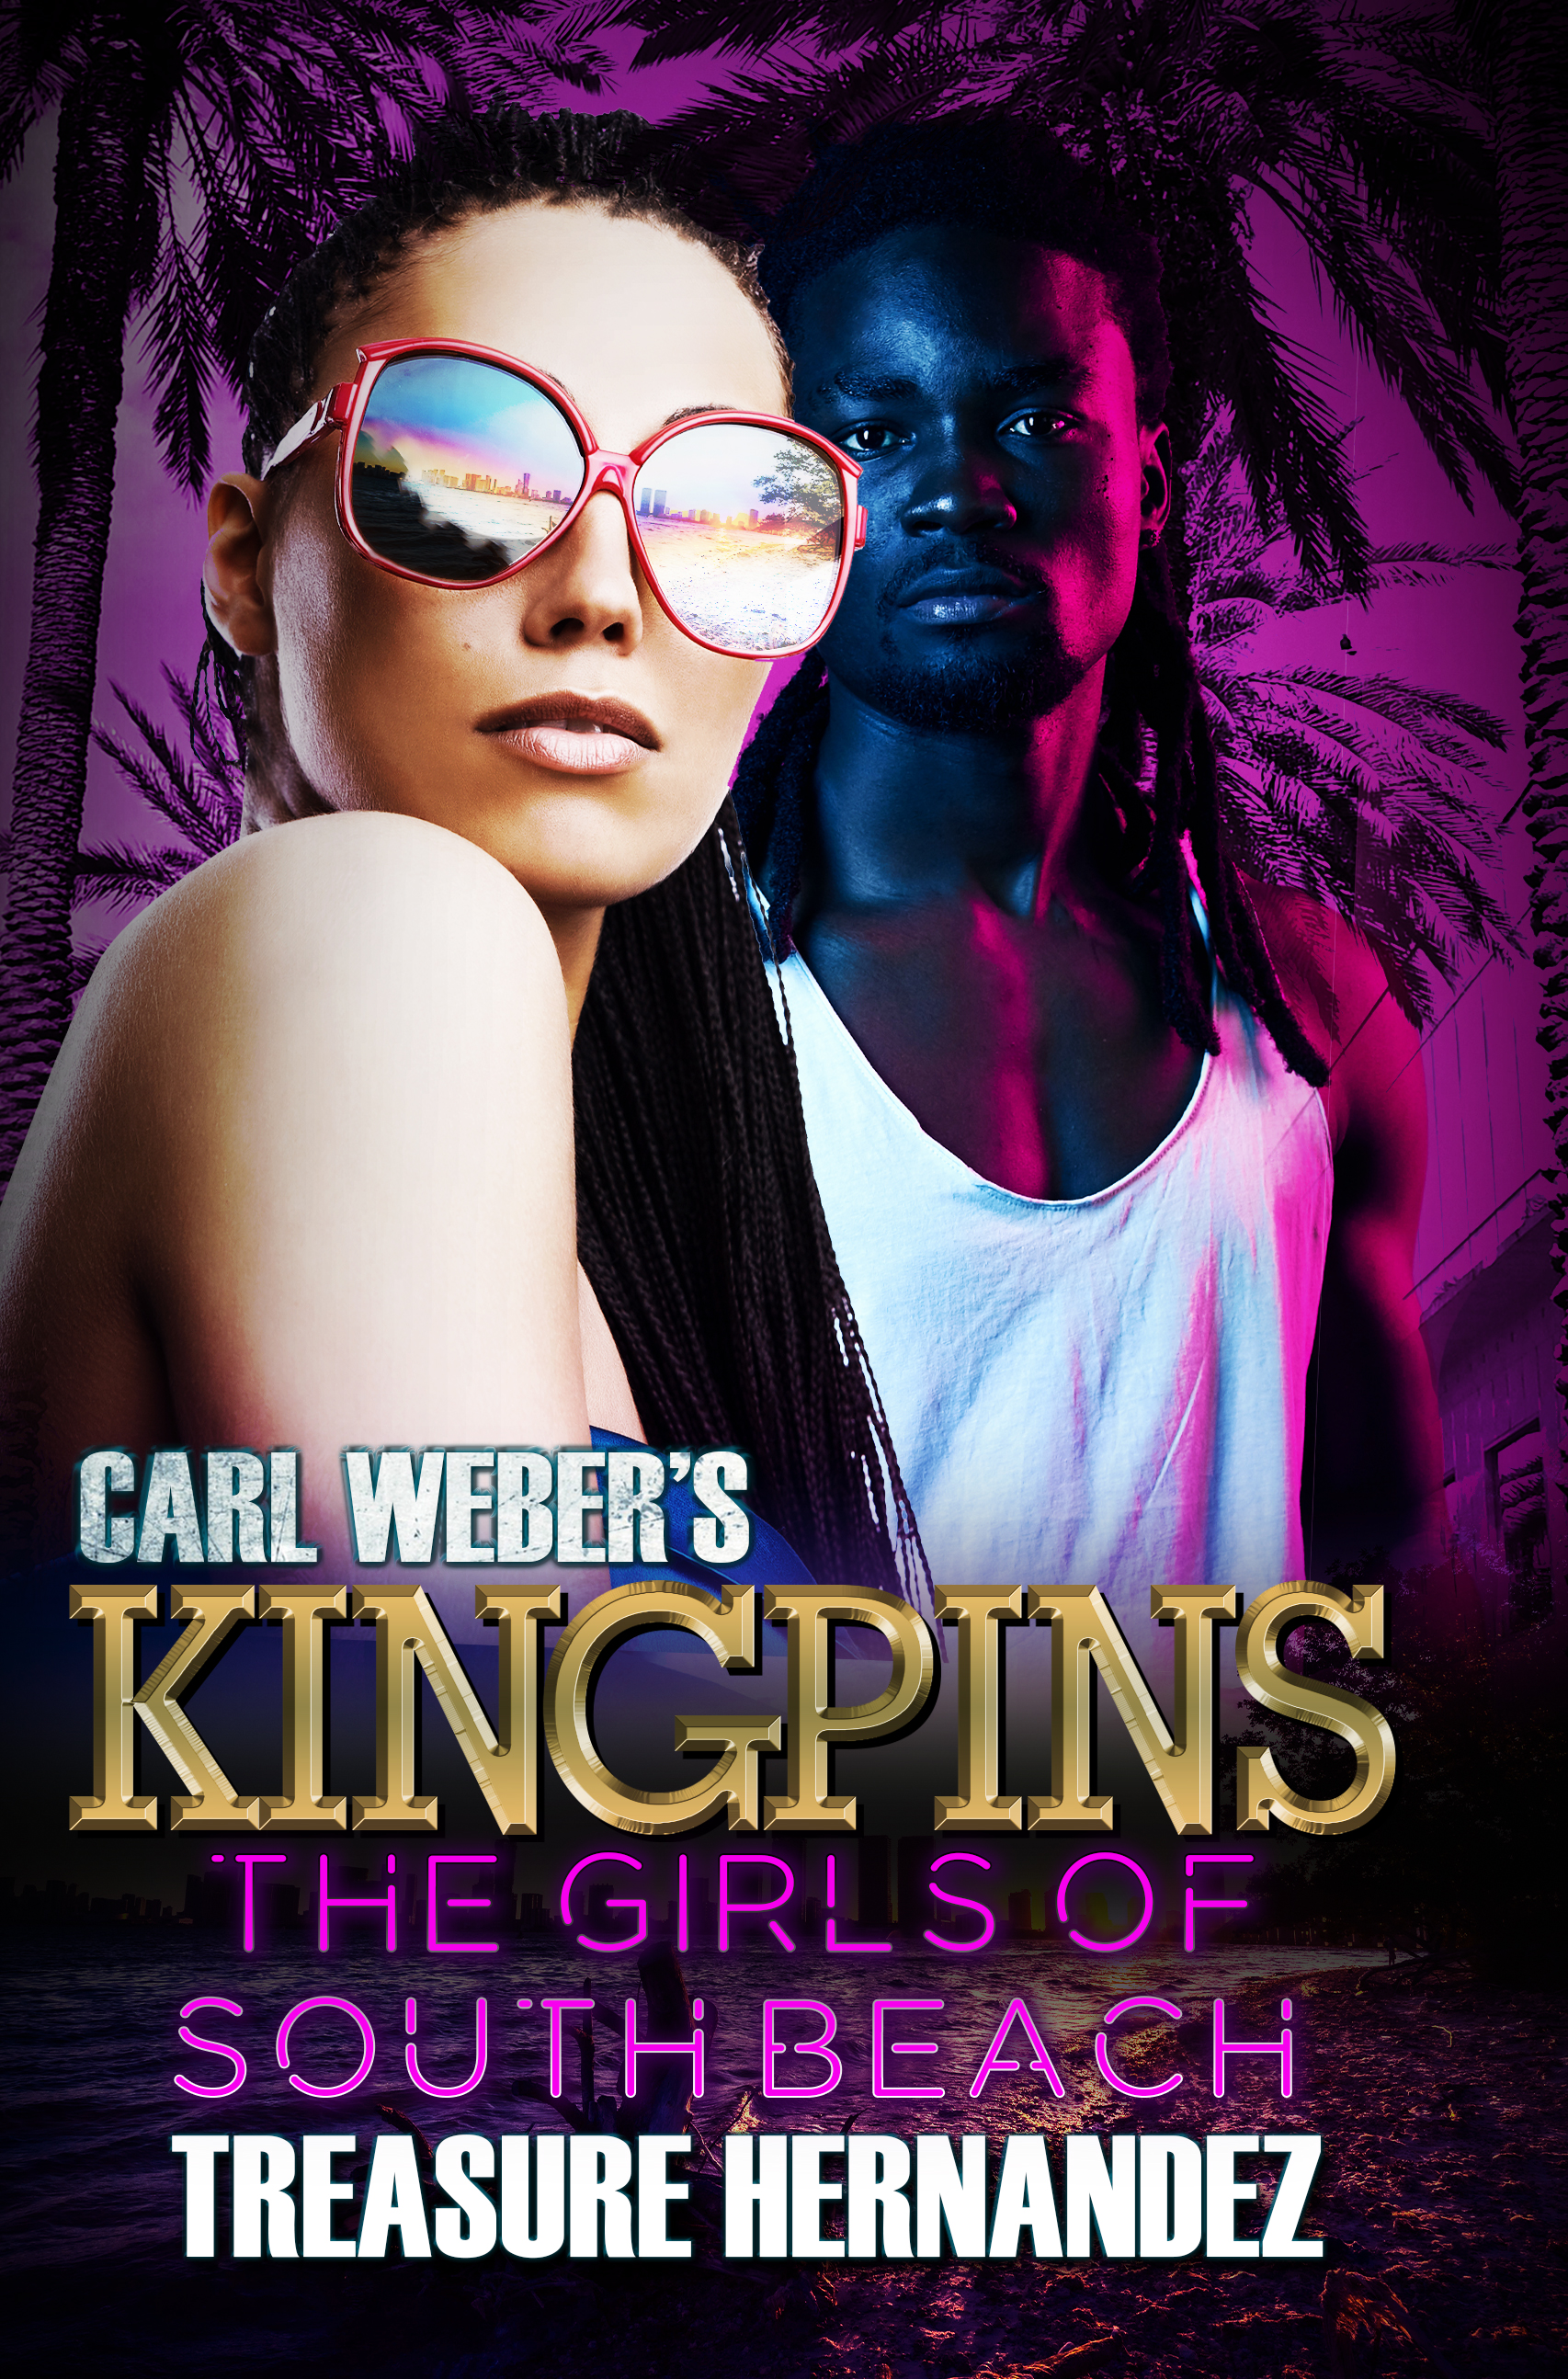 Carl Weber's Kingpins: The Girls of South Beach